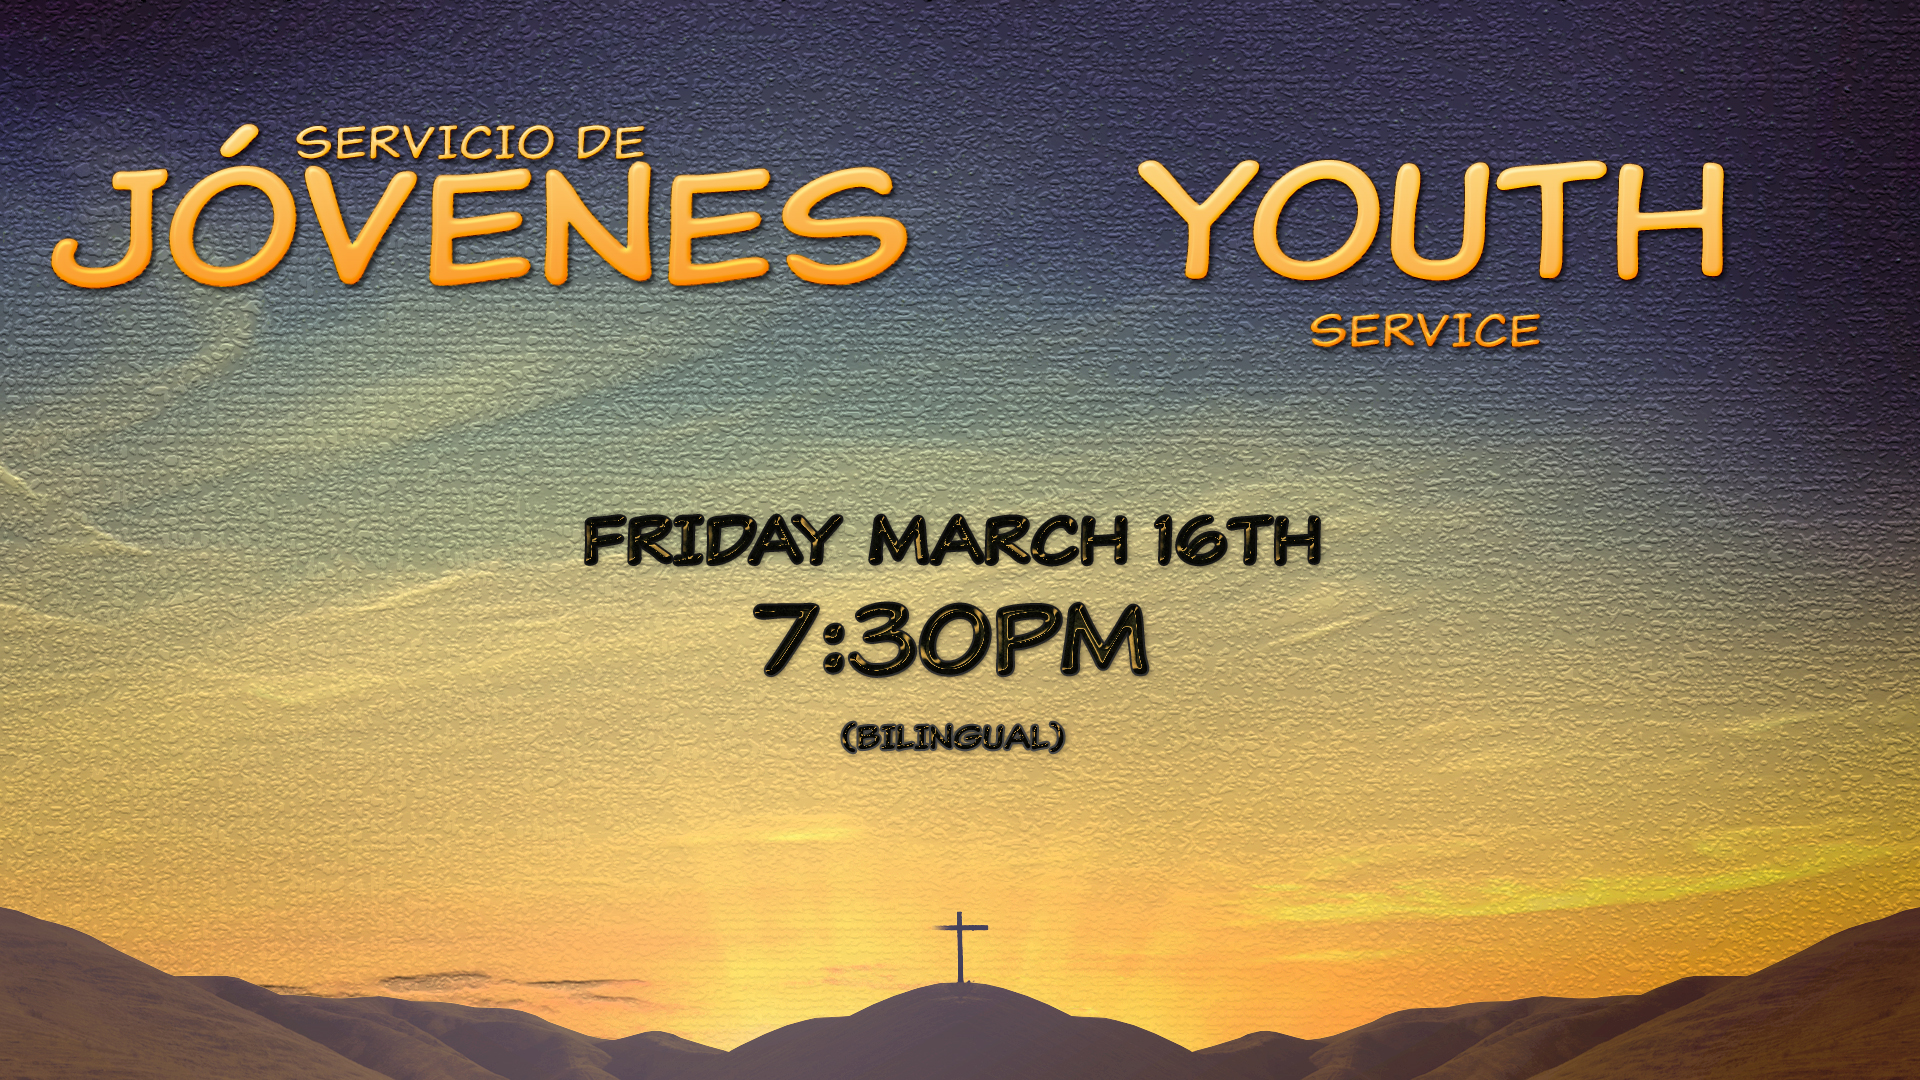 Youth Service Friday March 16th